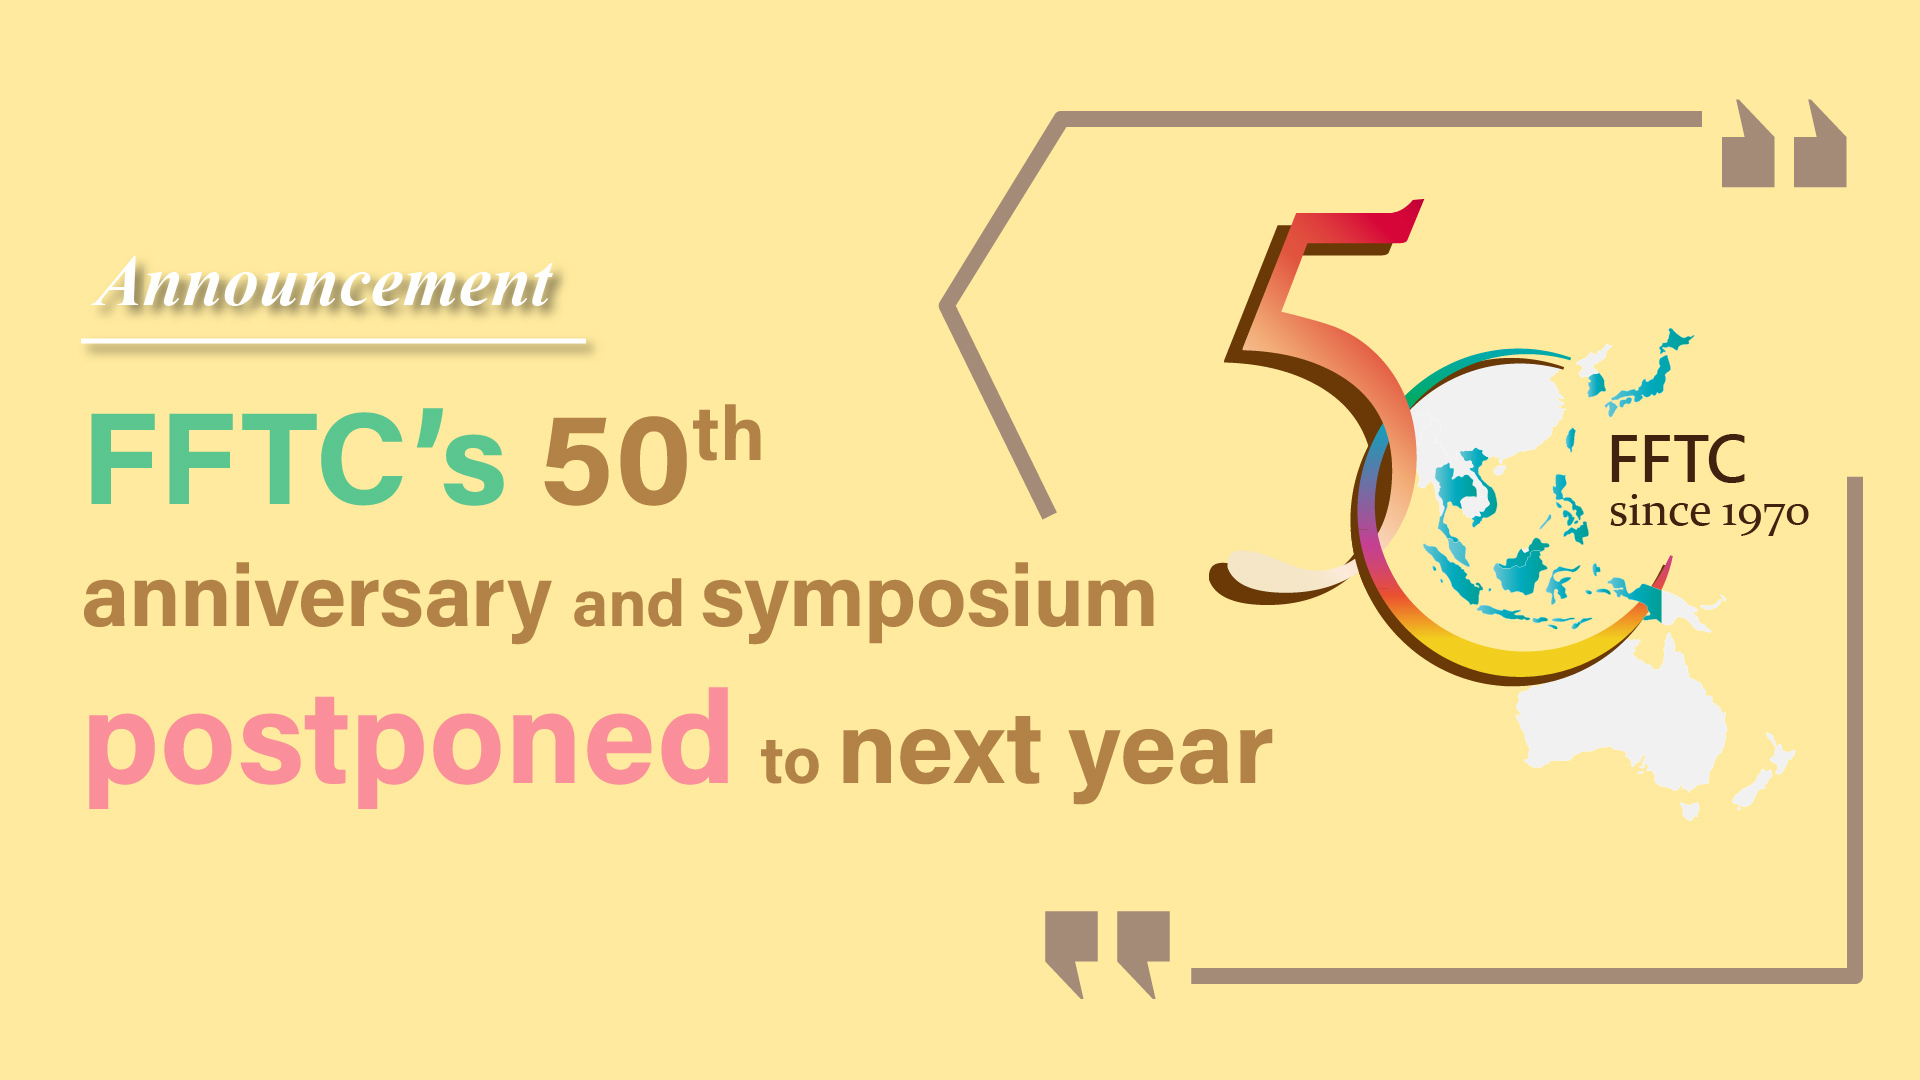 FFTC's 50th anniversary and symposium postponed to next year